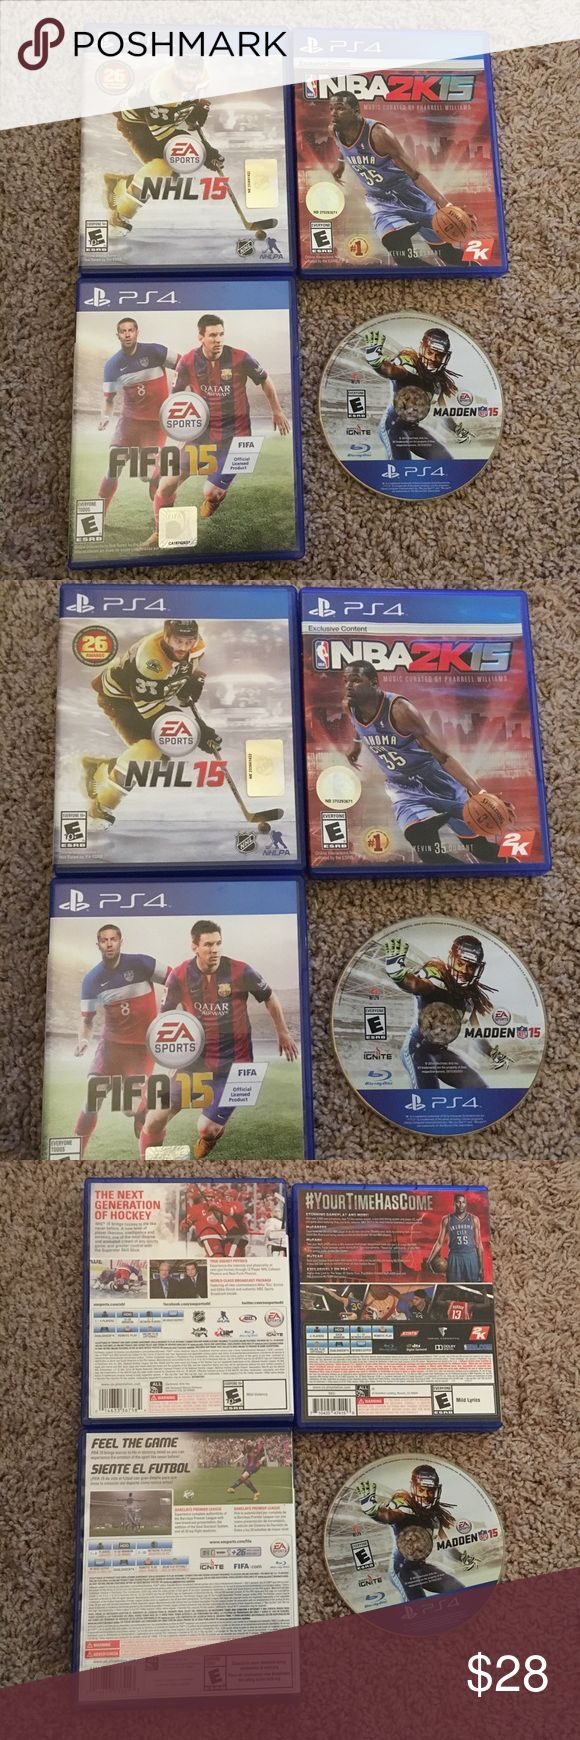 Best 25 price of ps4 ideas on pinterest best price on ps4 ps4 set of 4 video games ps4 set of 4 video games for play station 4 for fandeluxe Gallery